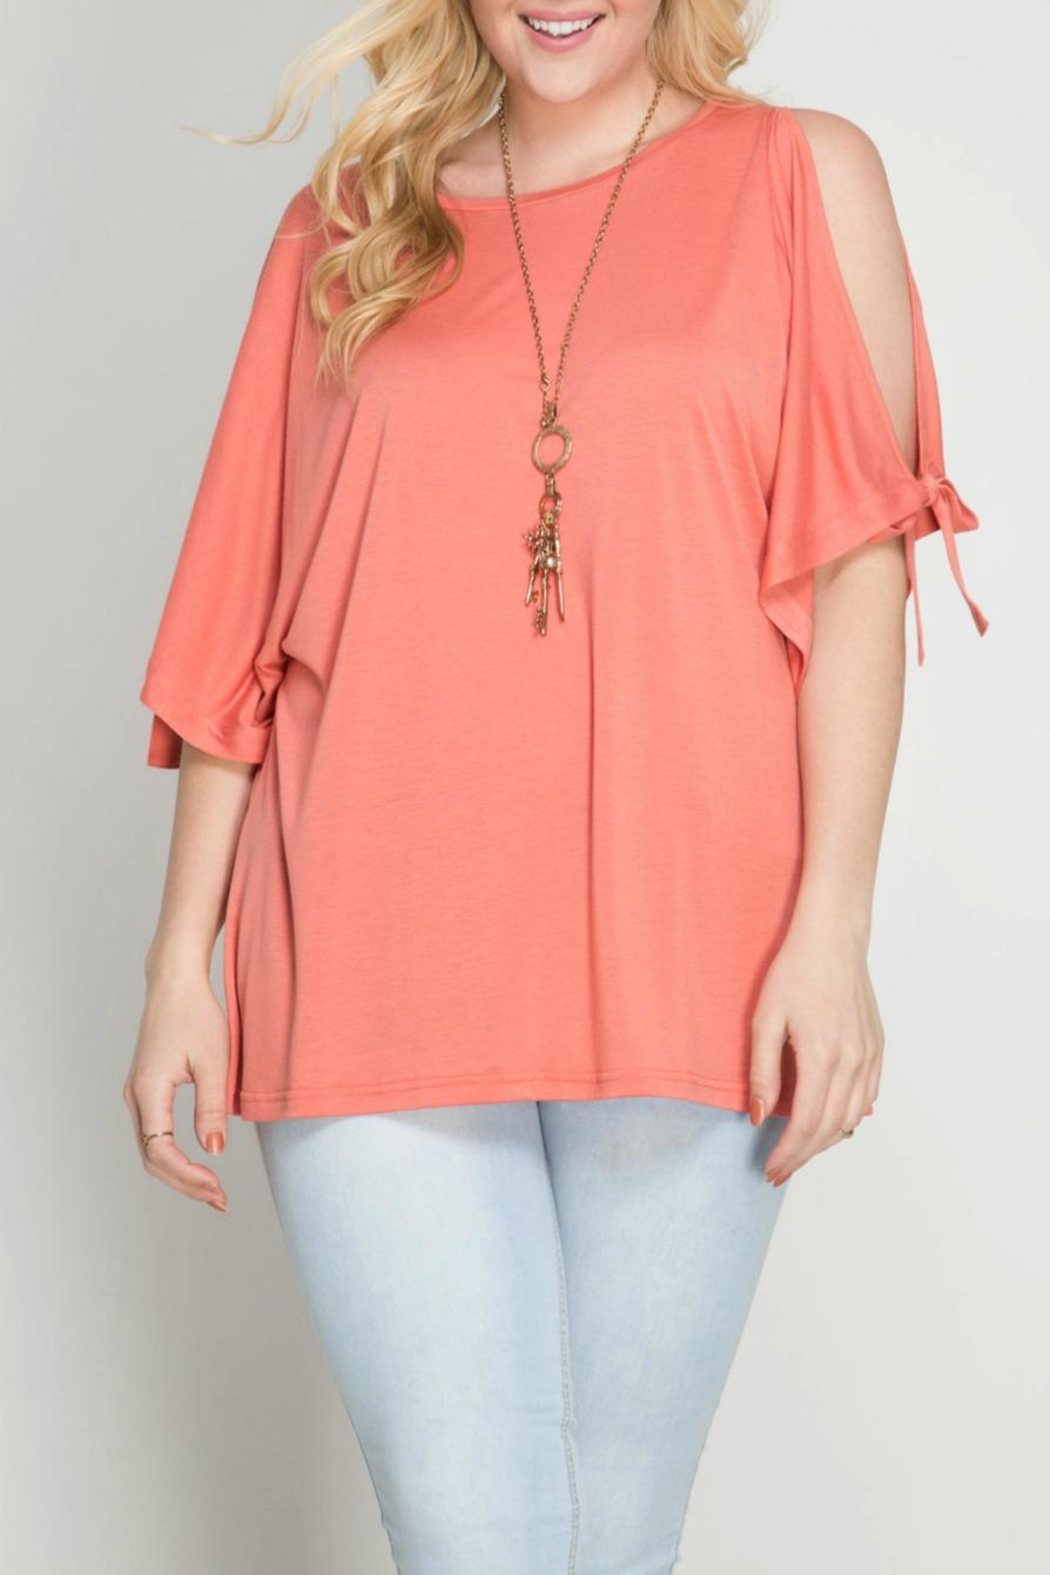 She + Sky Coral Open Shoulder Top - Main Image